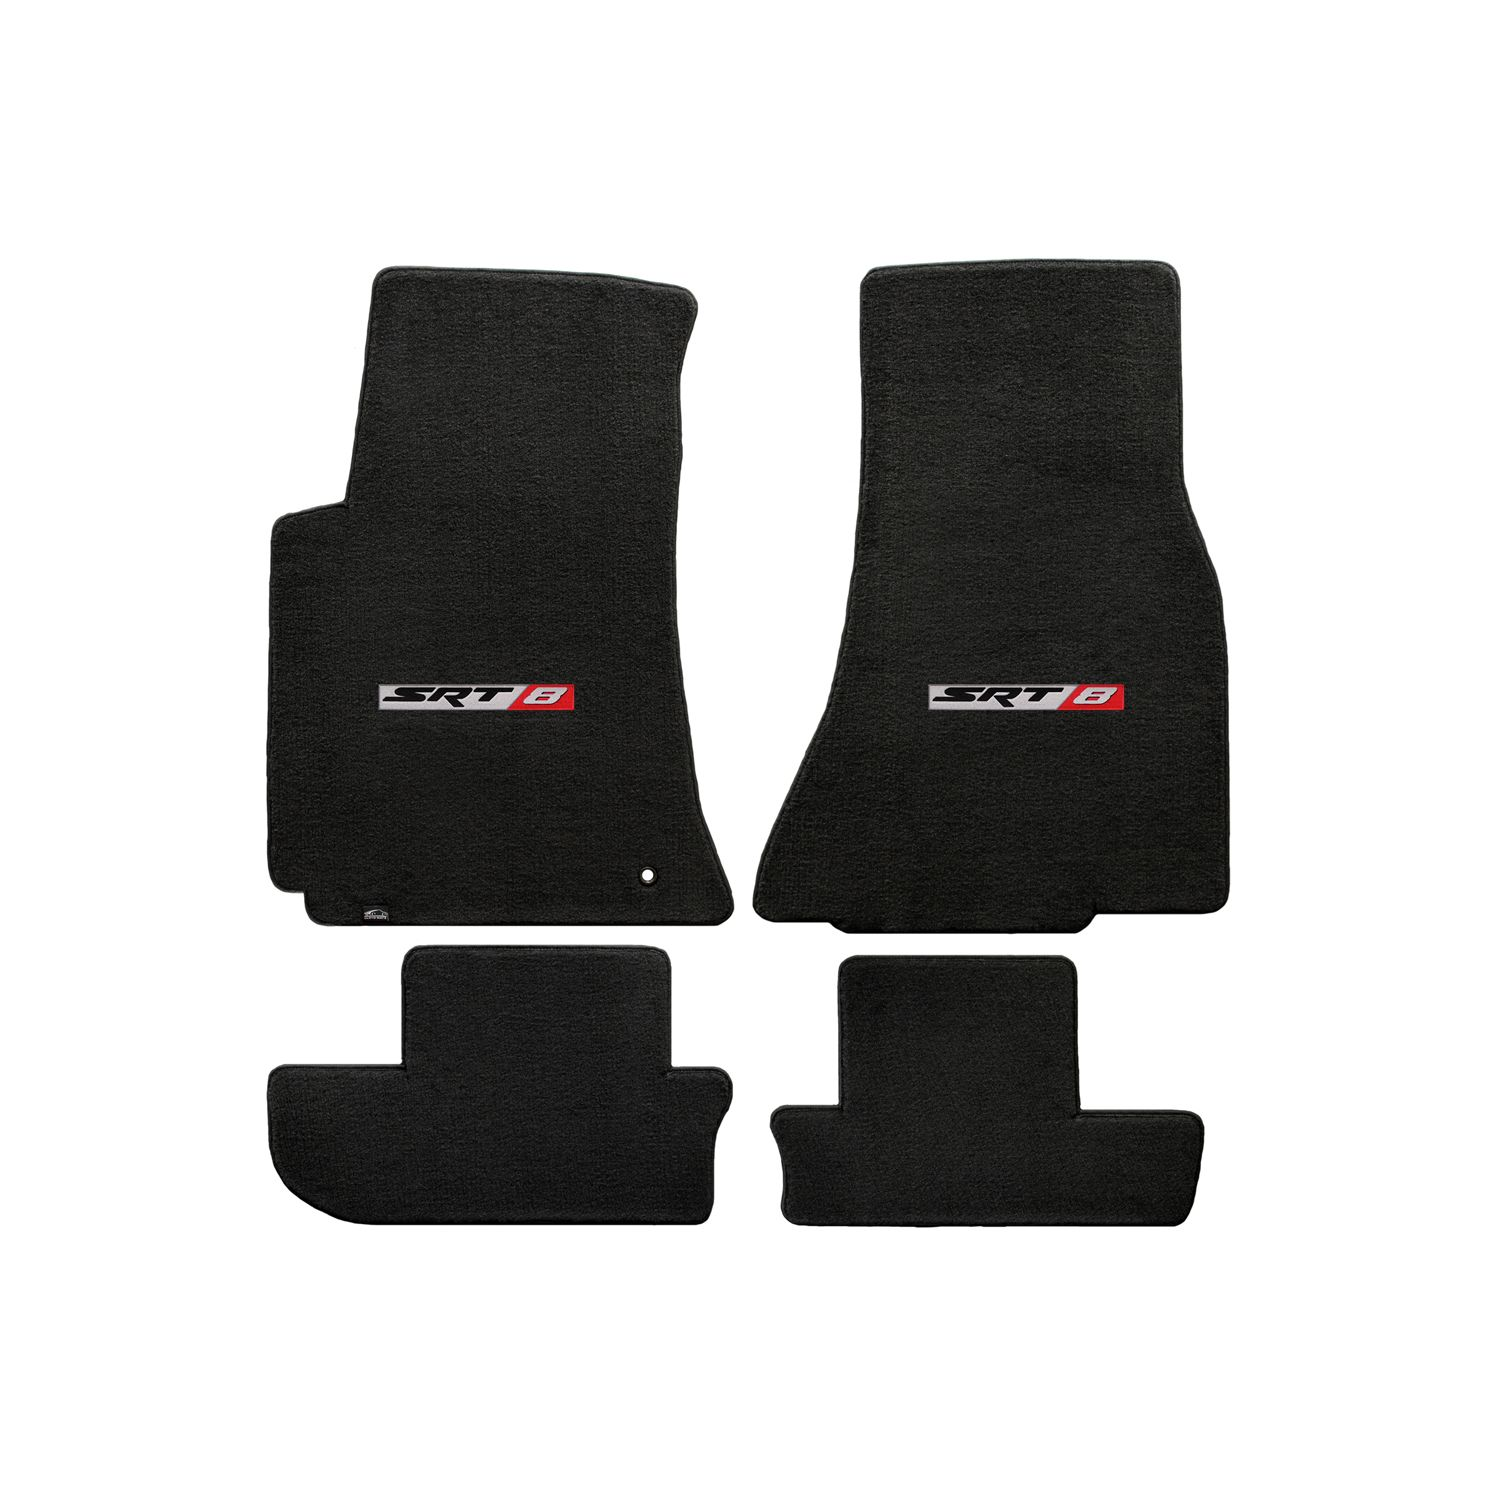 Challenger 2008-2010 2Pc Car Floor Mats Carpet Black Ebony Velourtex Dodge Logo